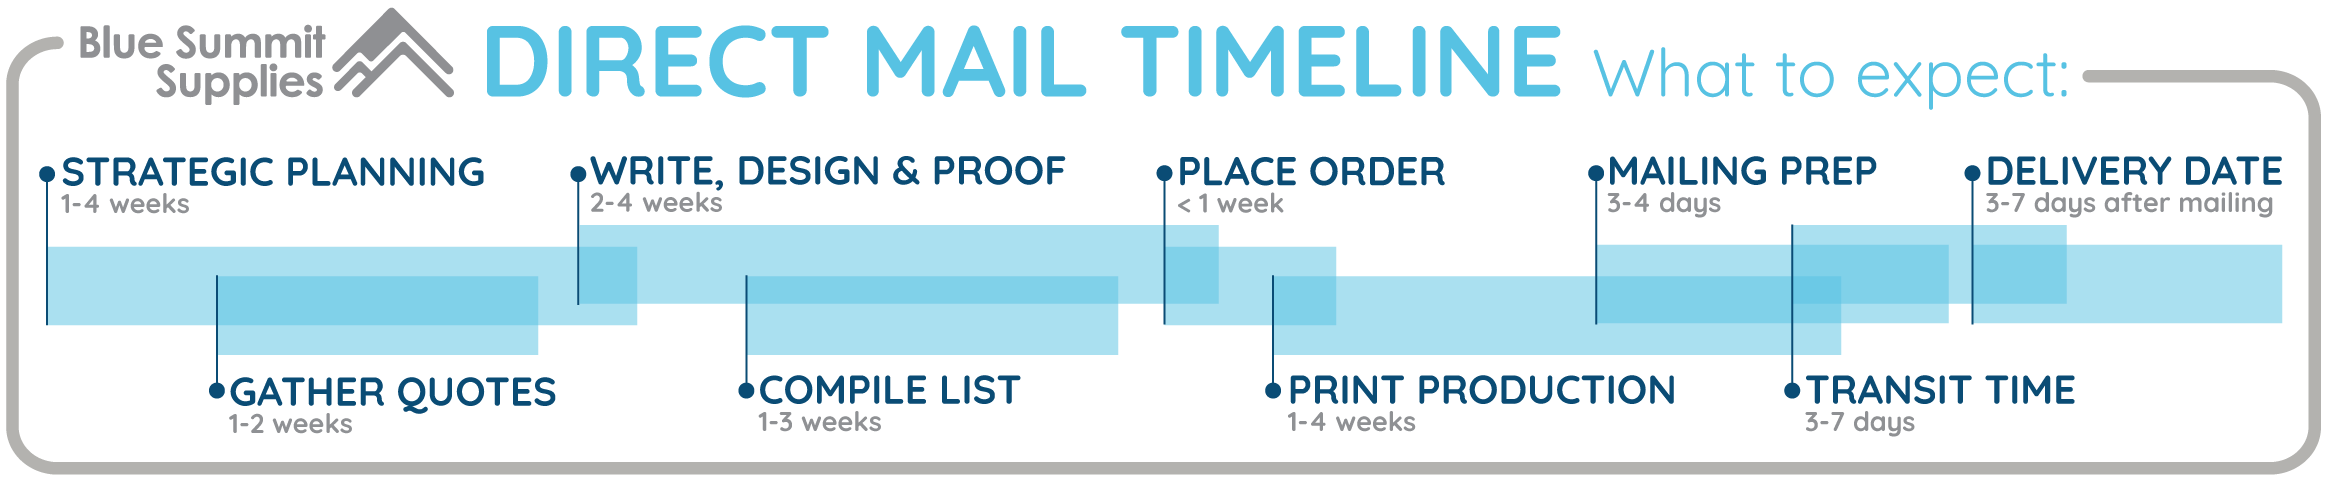 Direct mail timeline: Best time to send direct mail